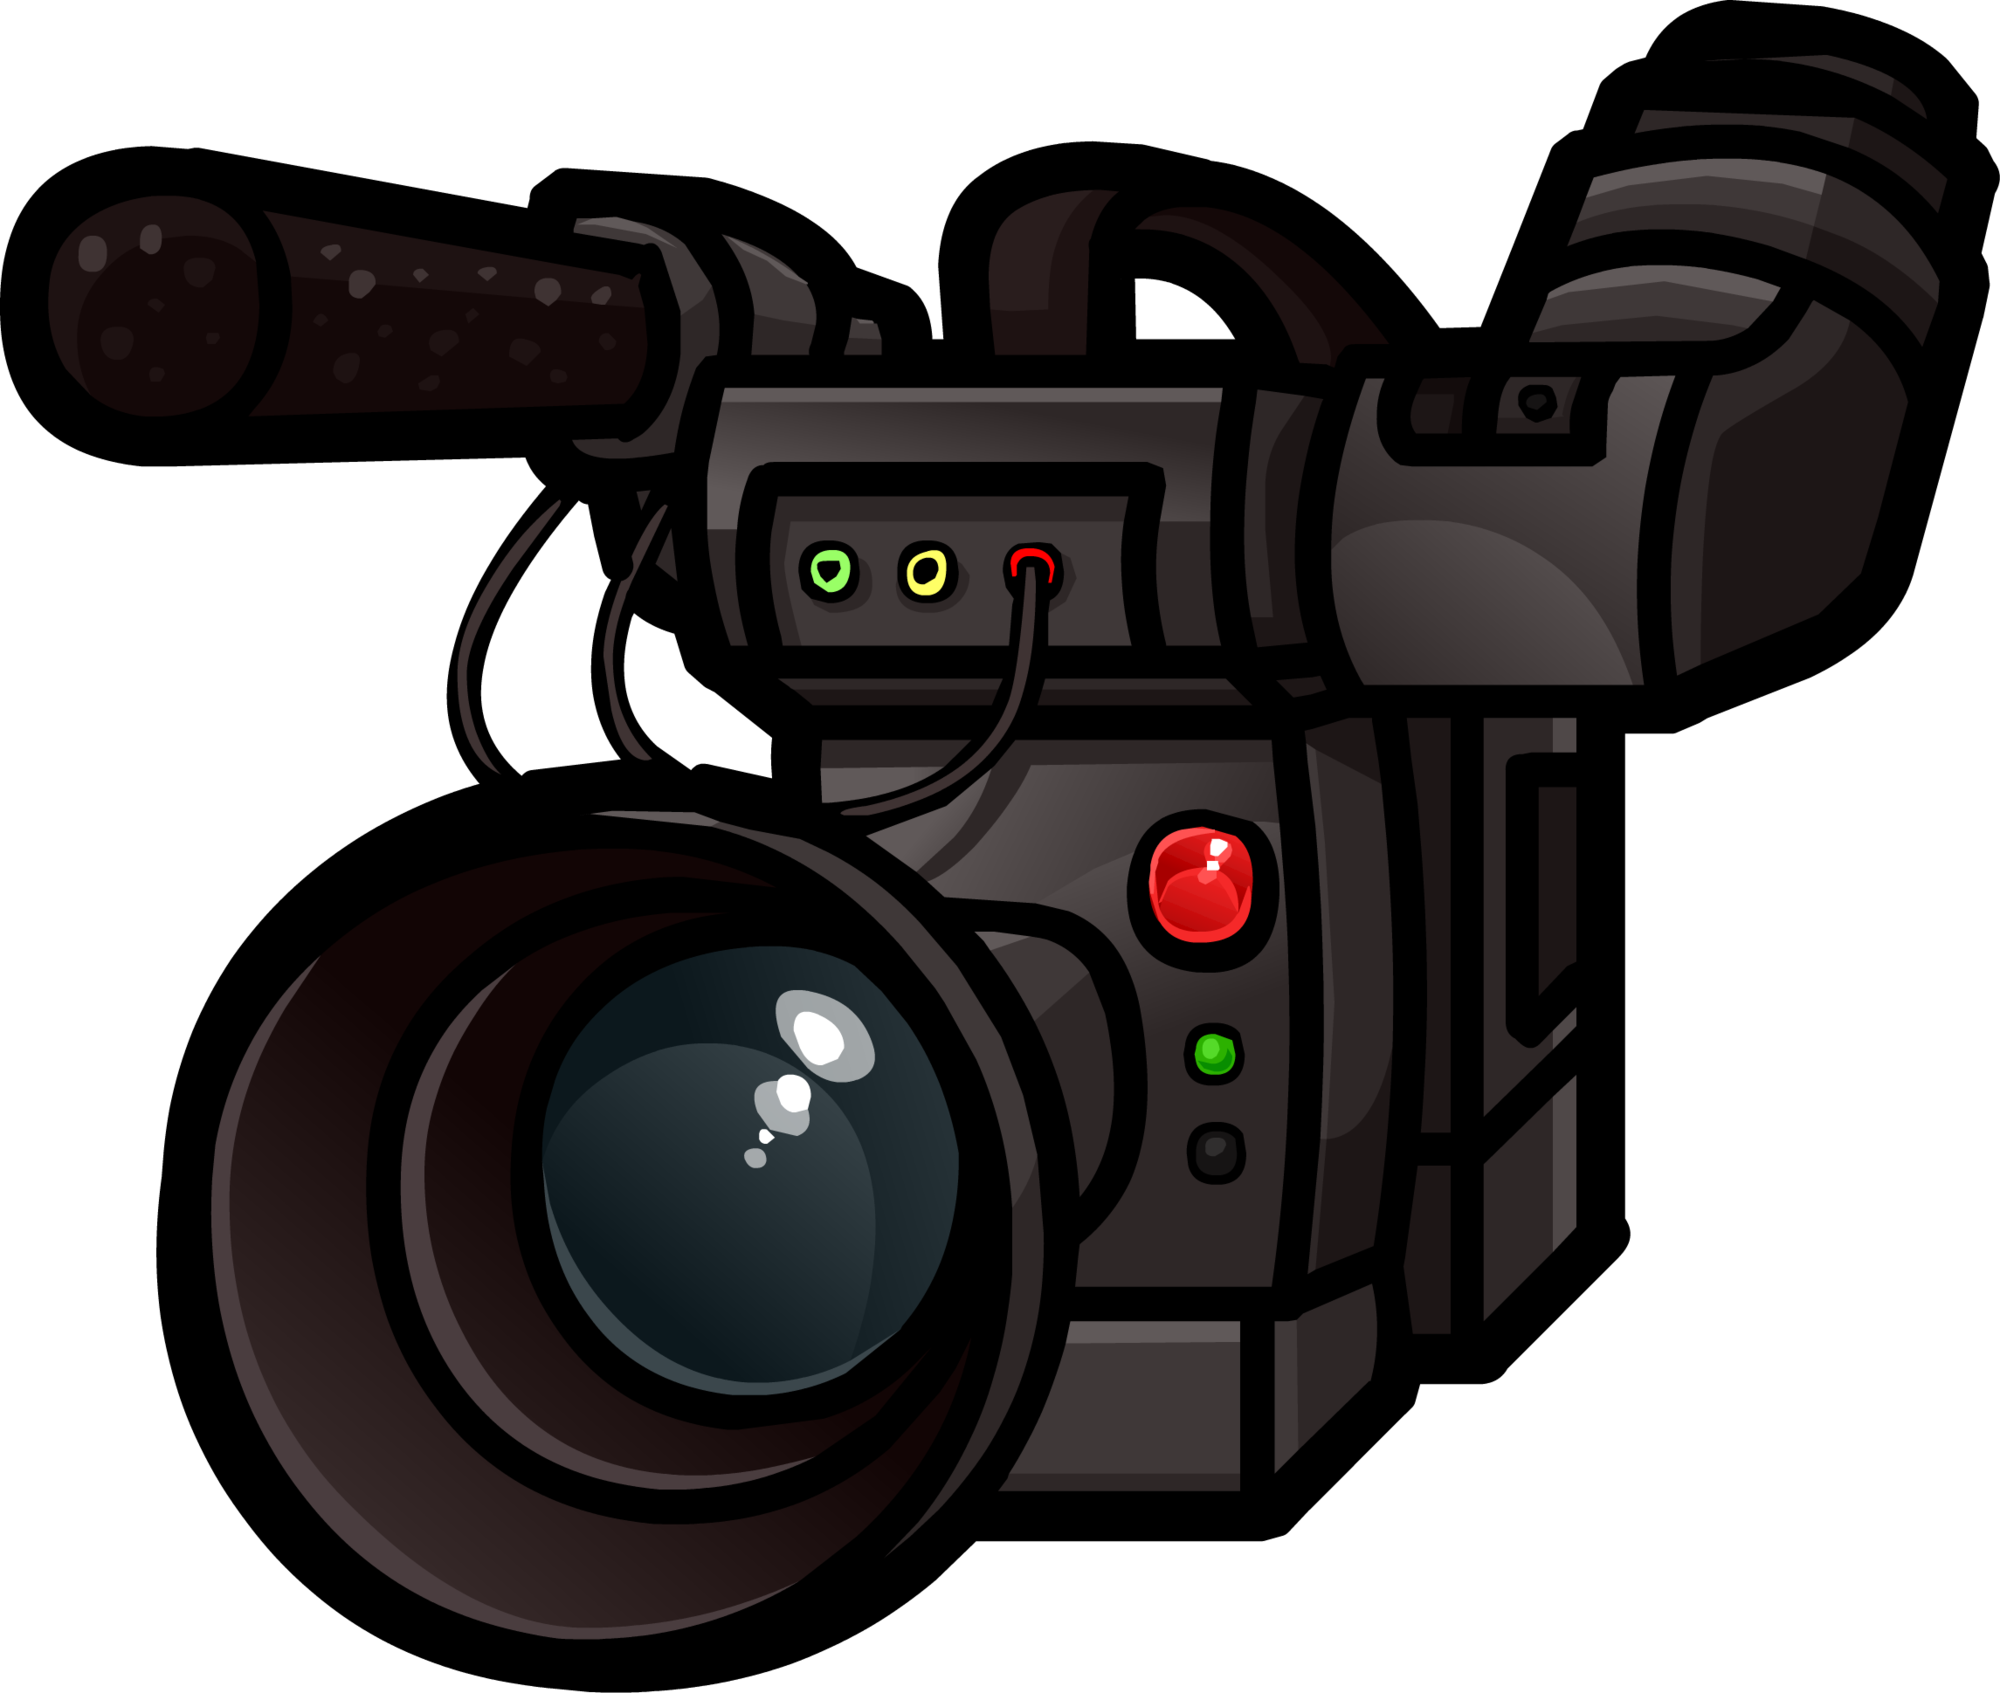 Video Camera Clipart Video Camera Clipar-video camera clipart video camera clipart png-13